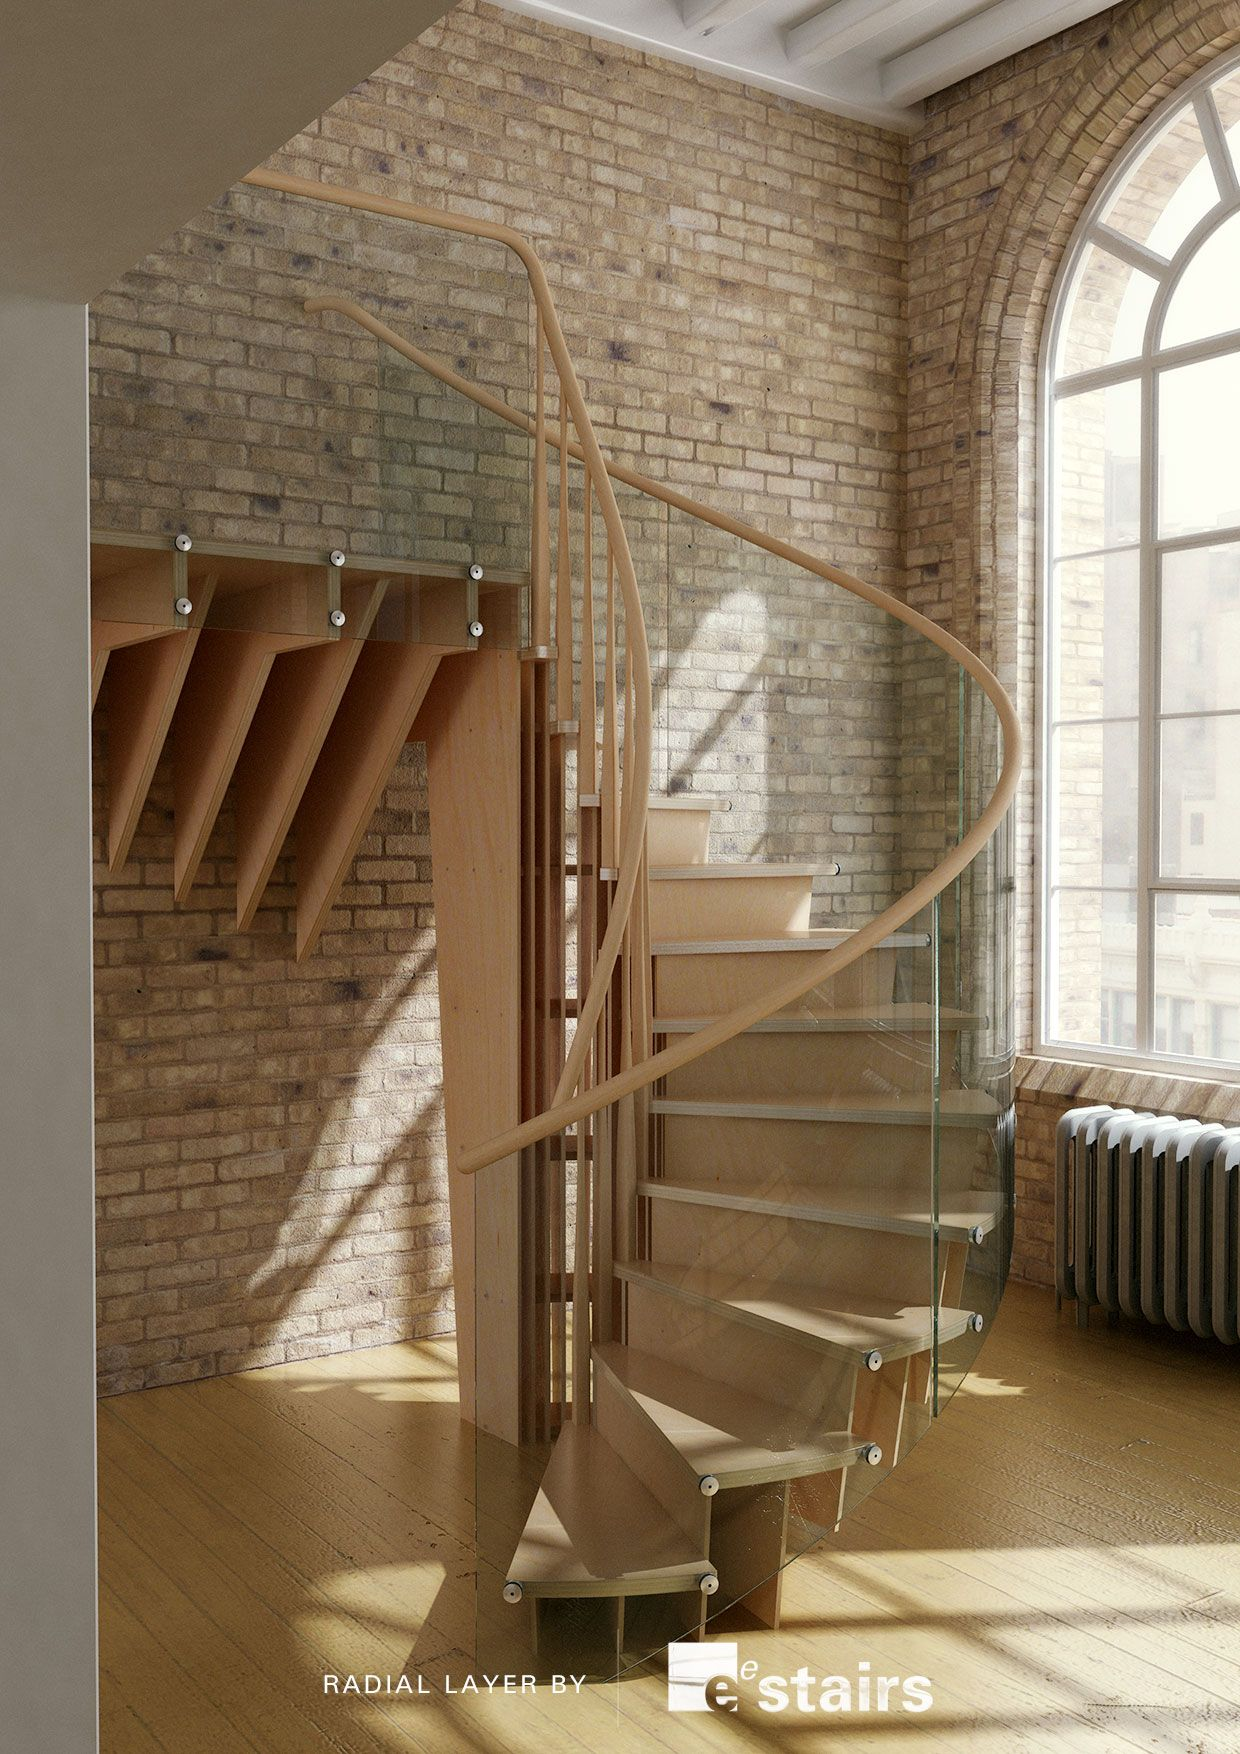 Radial layer timber, with glass balustrade